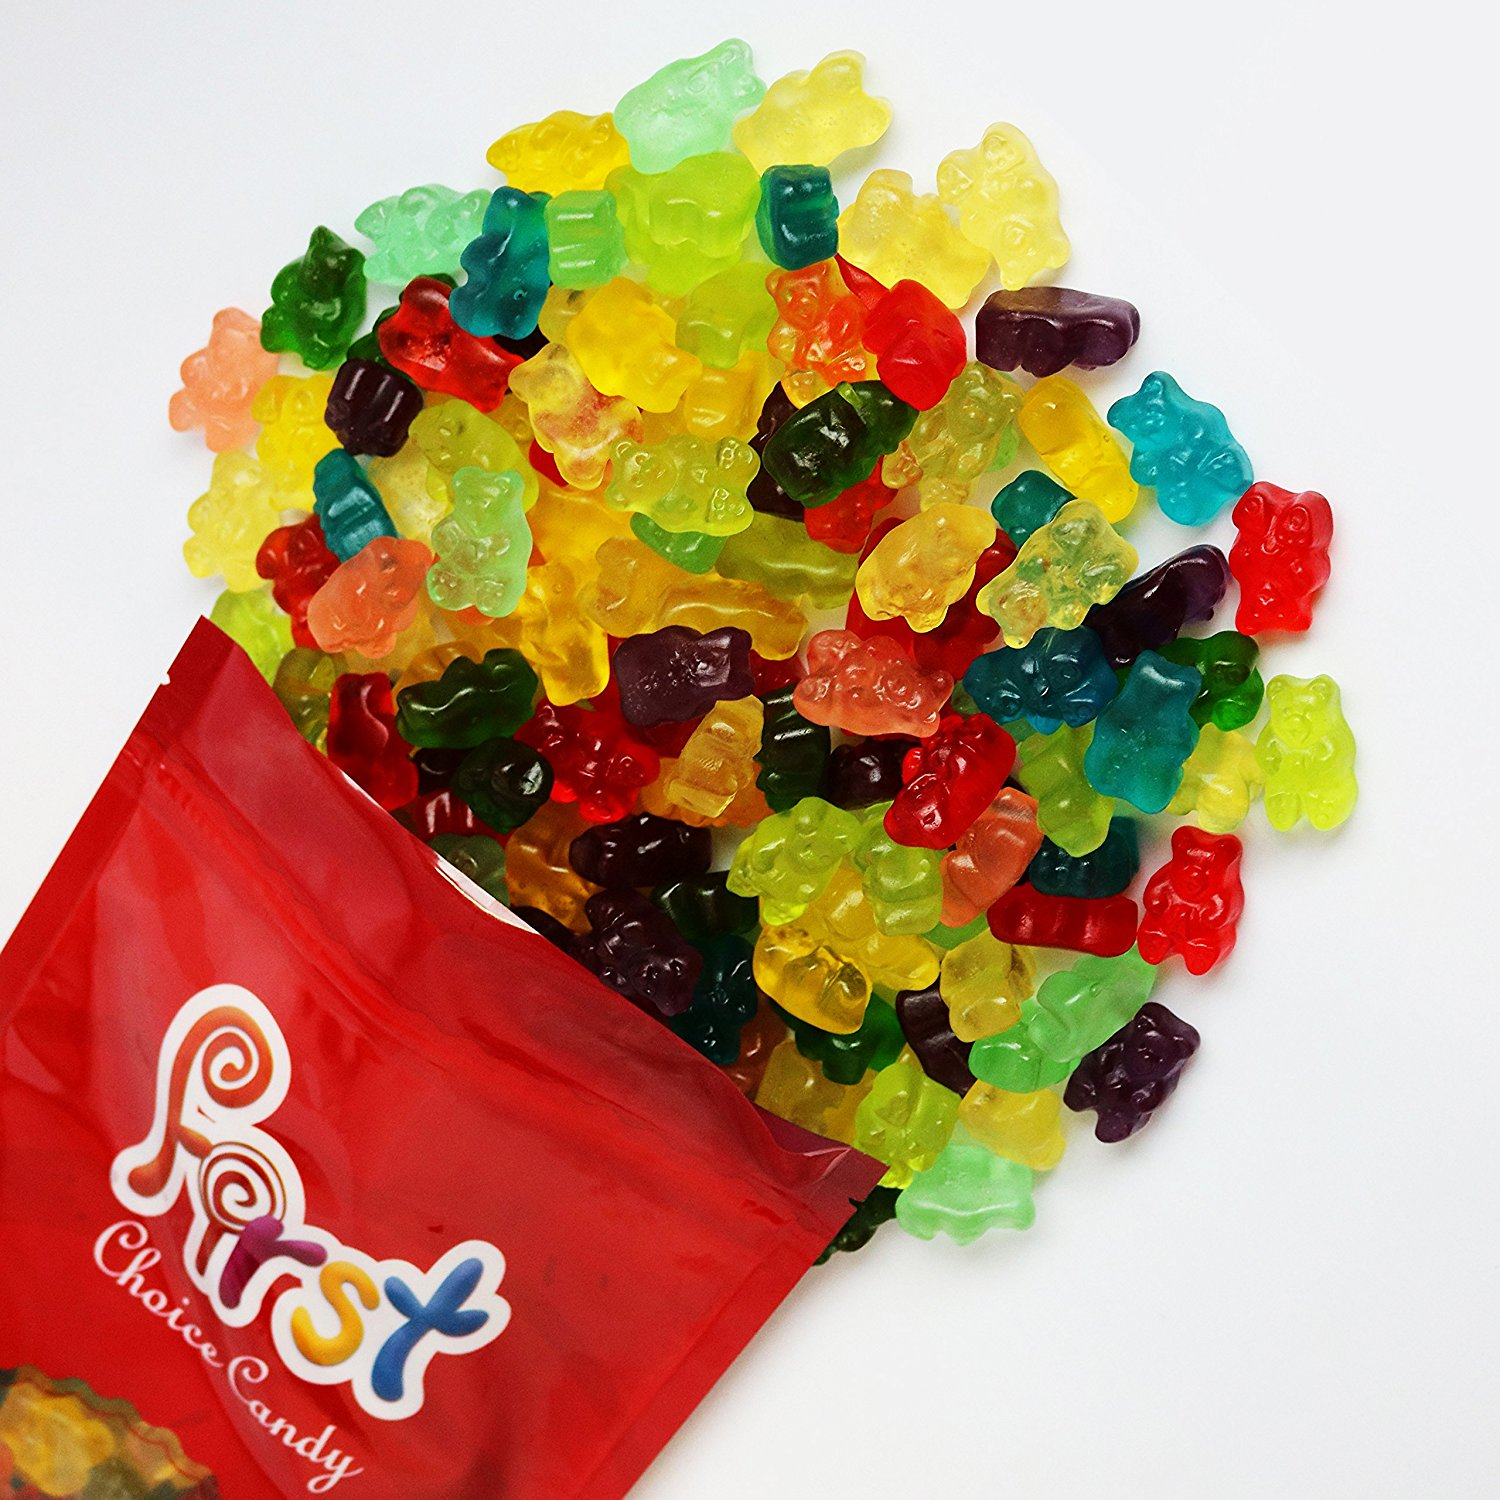 FirstChoiceCandy Albanese 12 Flavor Gummy Bears 2 Pound Resealable Bag by